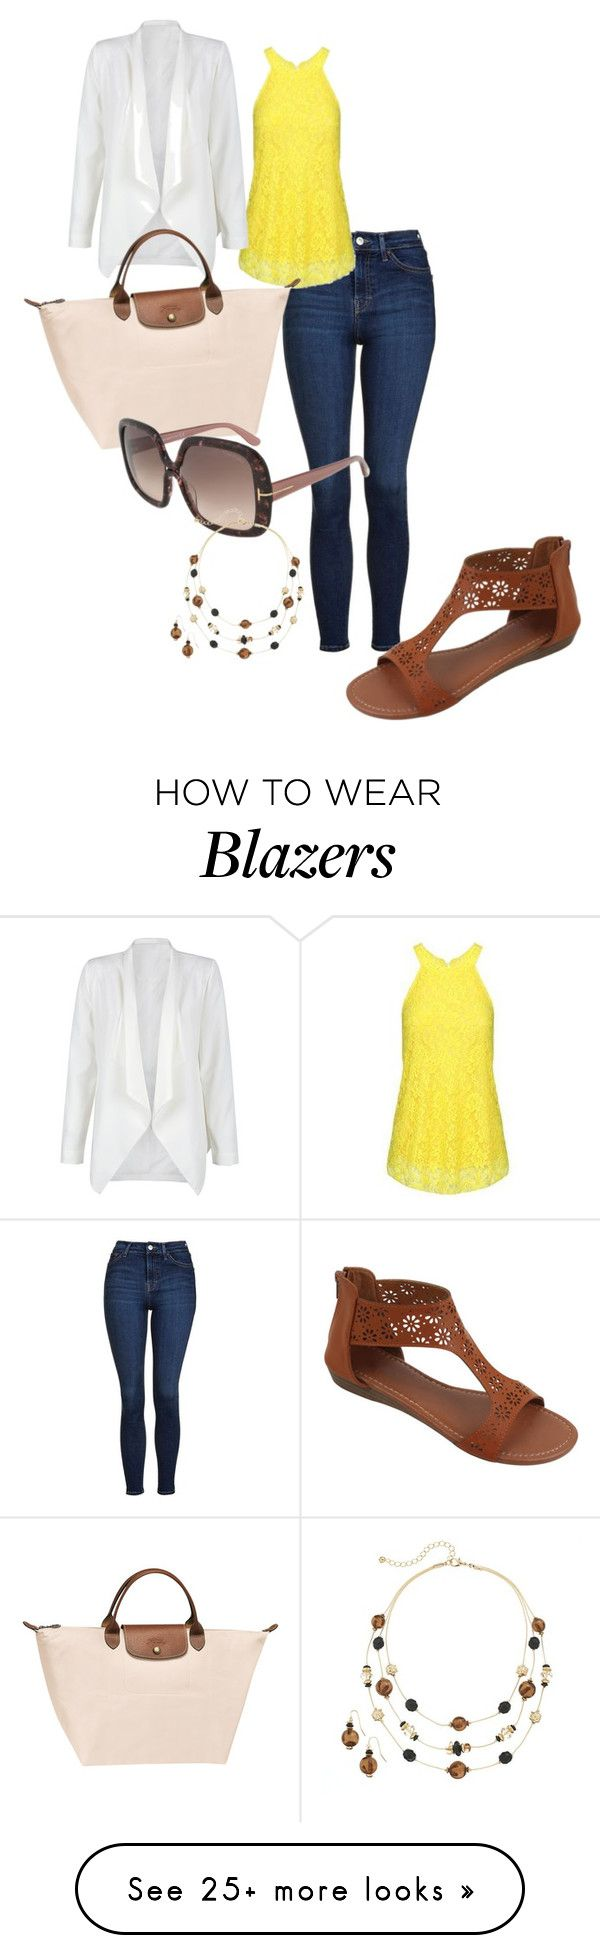 """""""Untitled #40"""" by sibonokuhlemathe on Polyvore featuring Topshop, WithChic, Longchamp, Tom Ford and Croft & Barrow"""